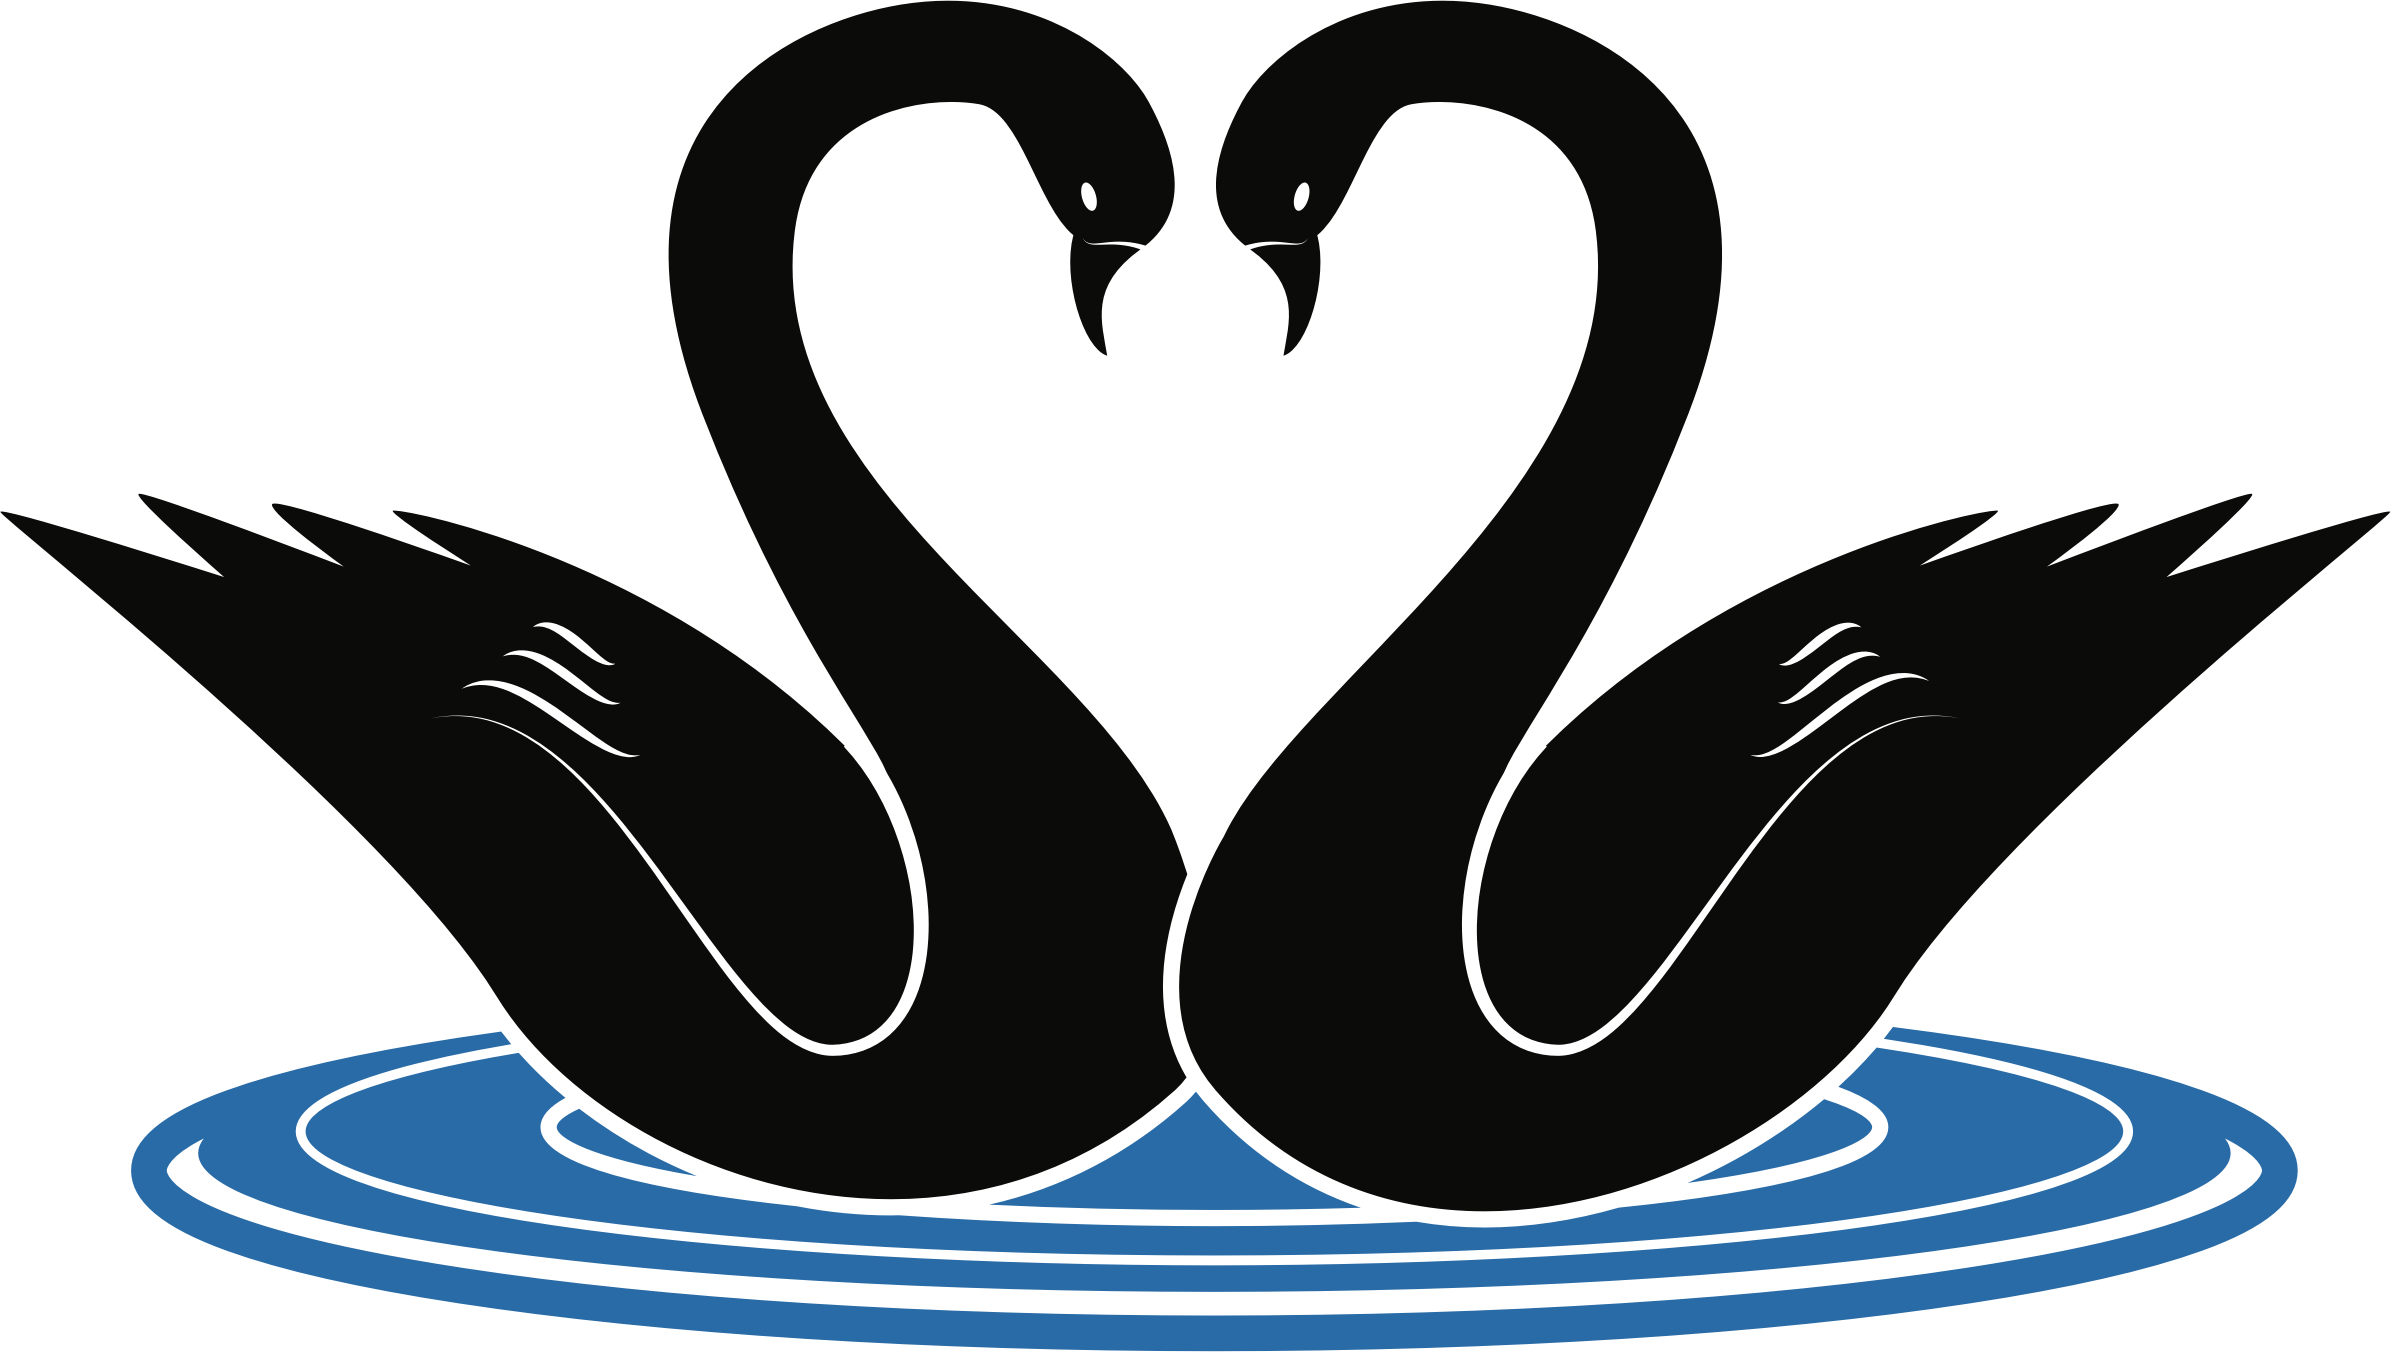 Swan Vector Png & Free Swan Vector.png Transparent Images ...